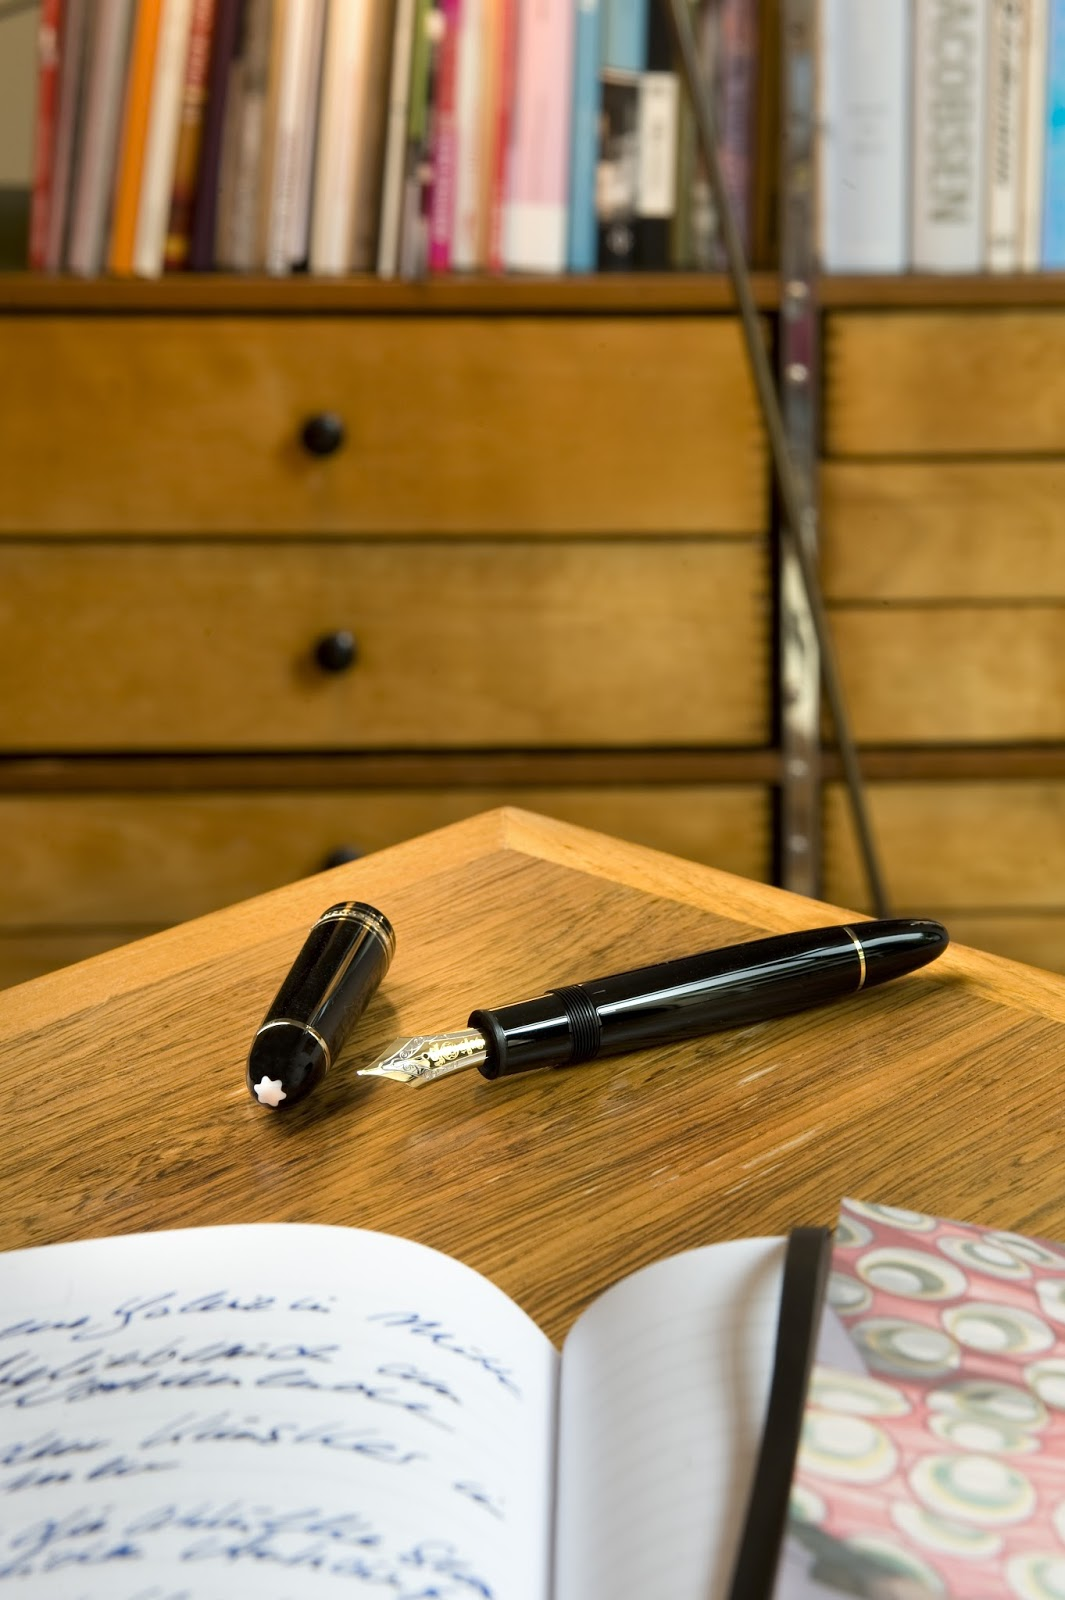 00O00 Menswear Blog: President Barack Obama and the Montblanc Meisterstück pen